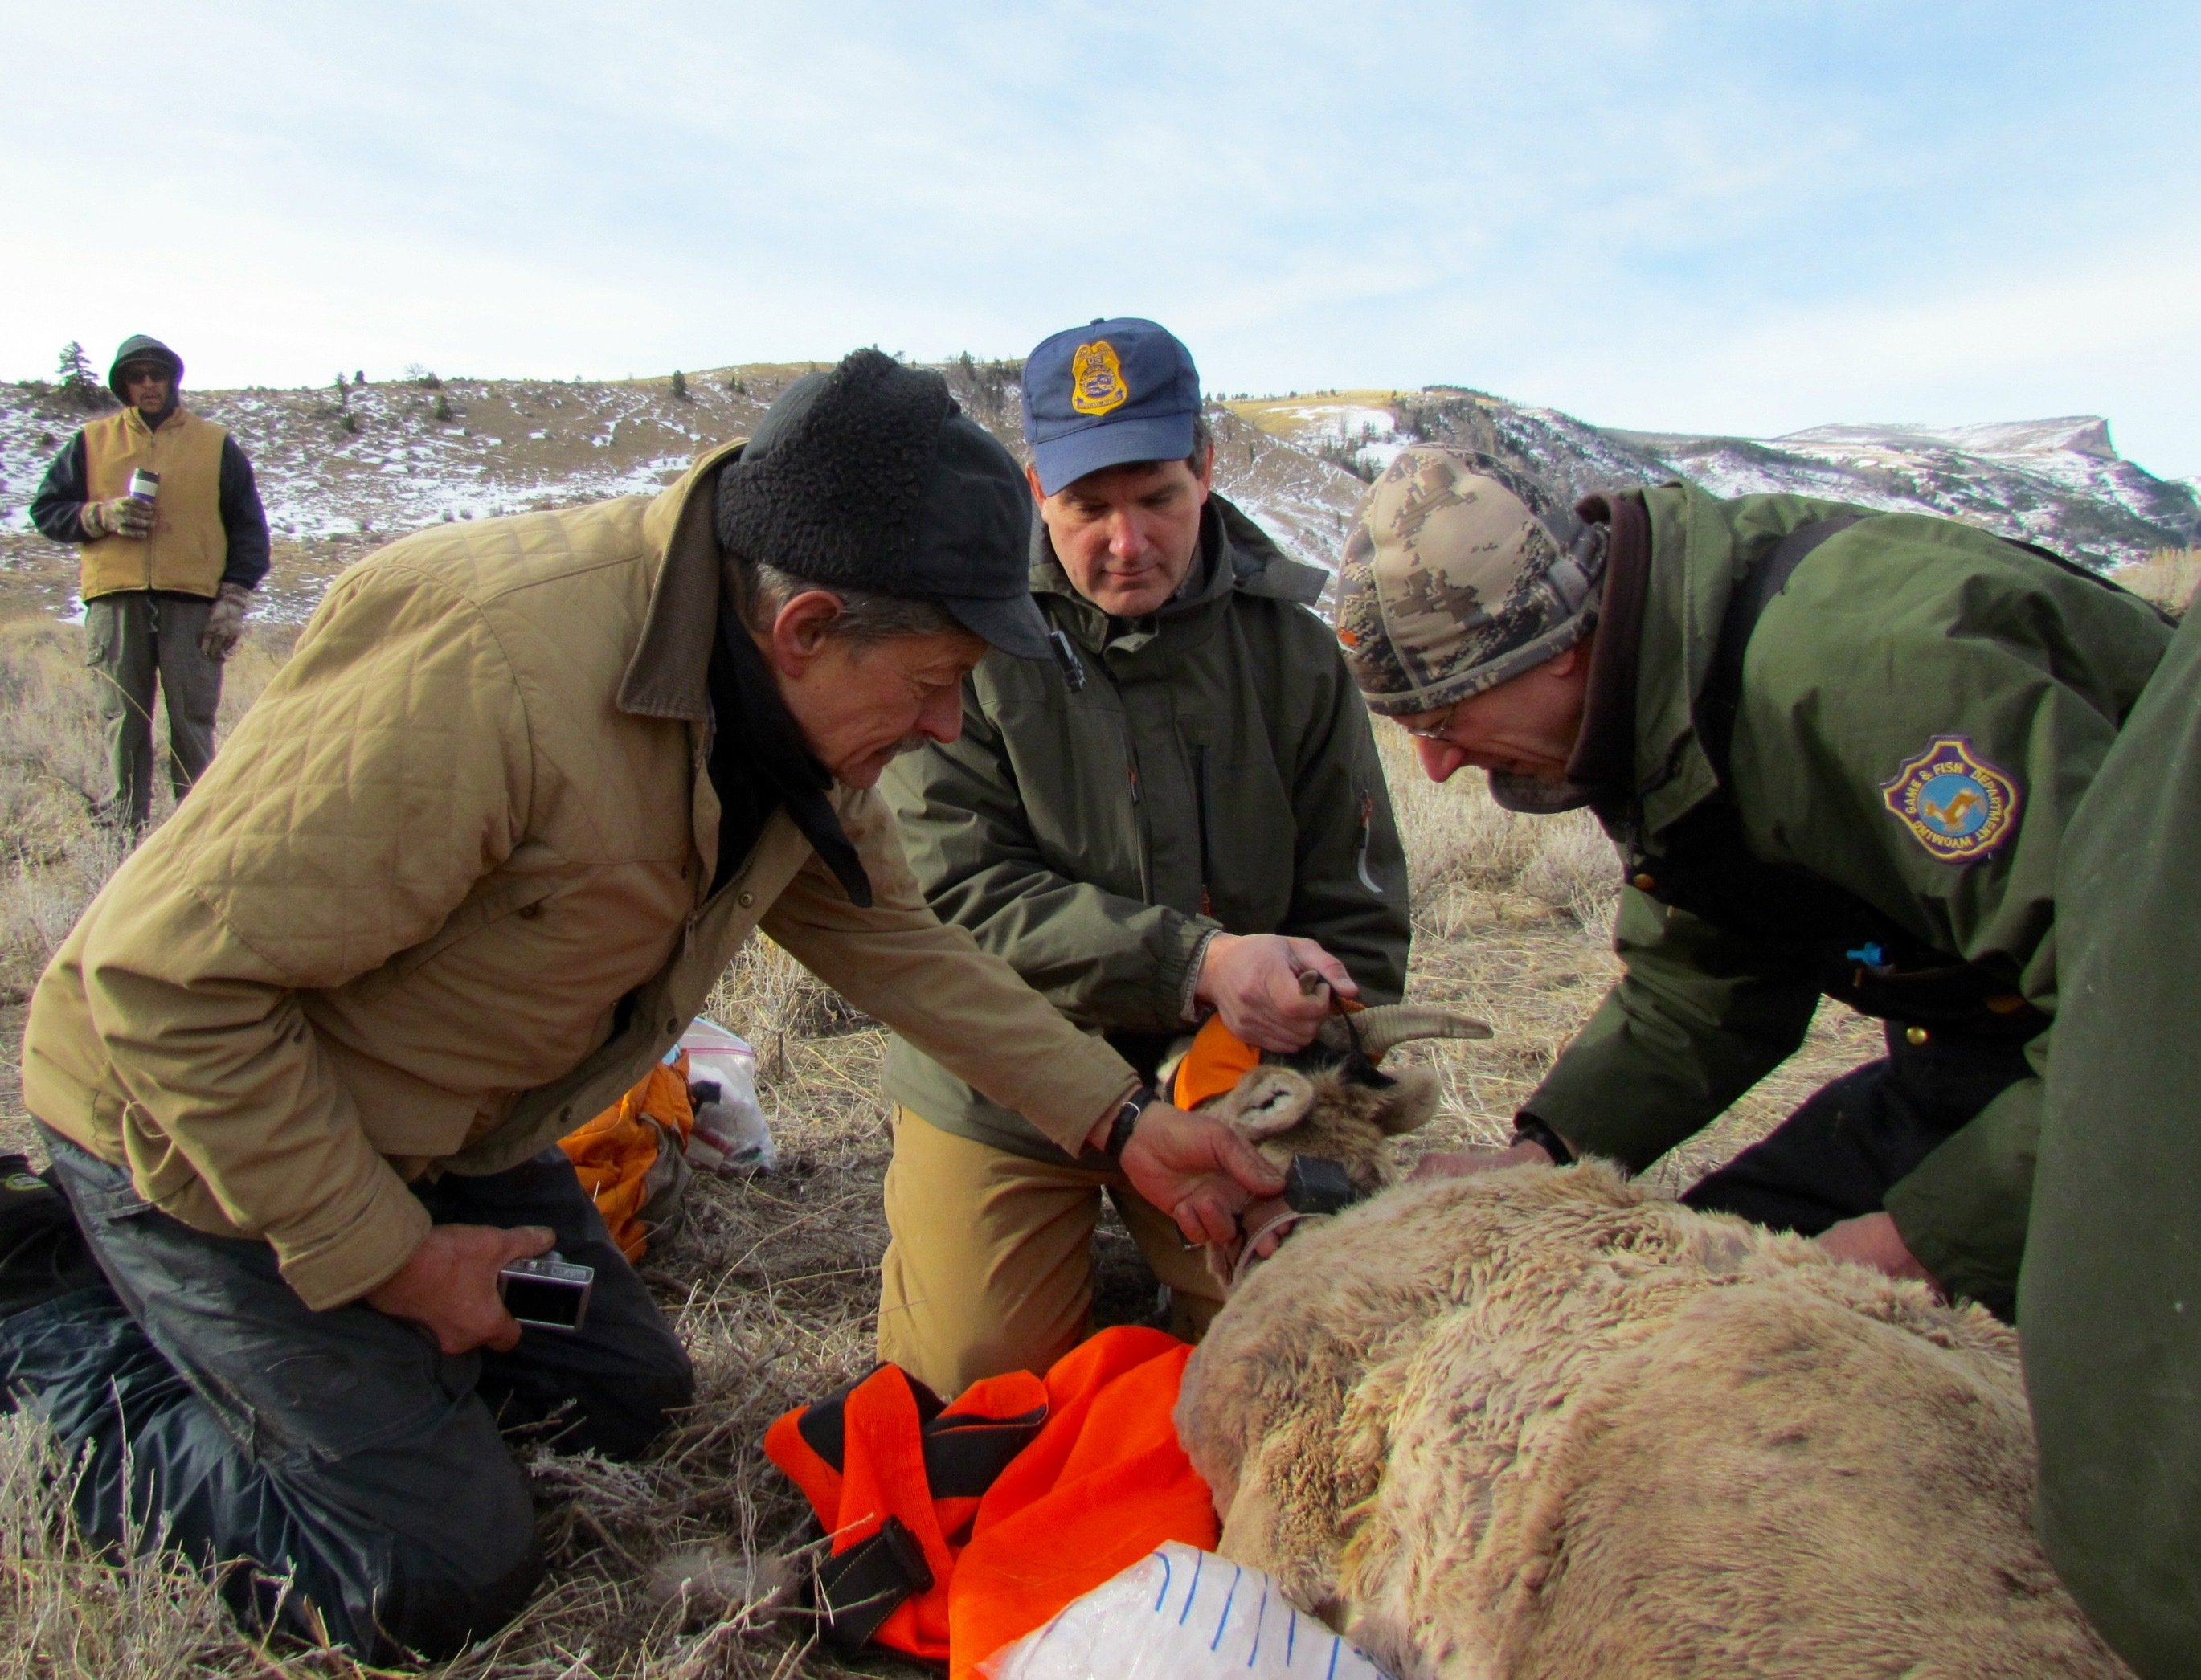 bighorn sheep are captured and collared